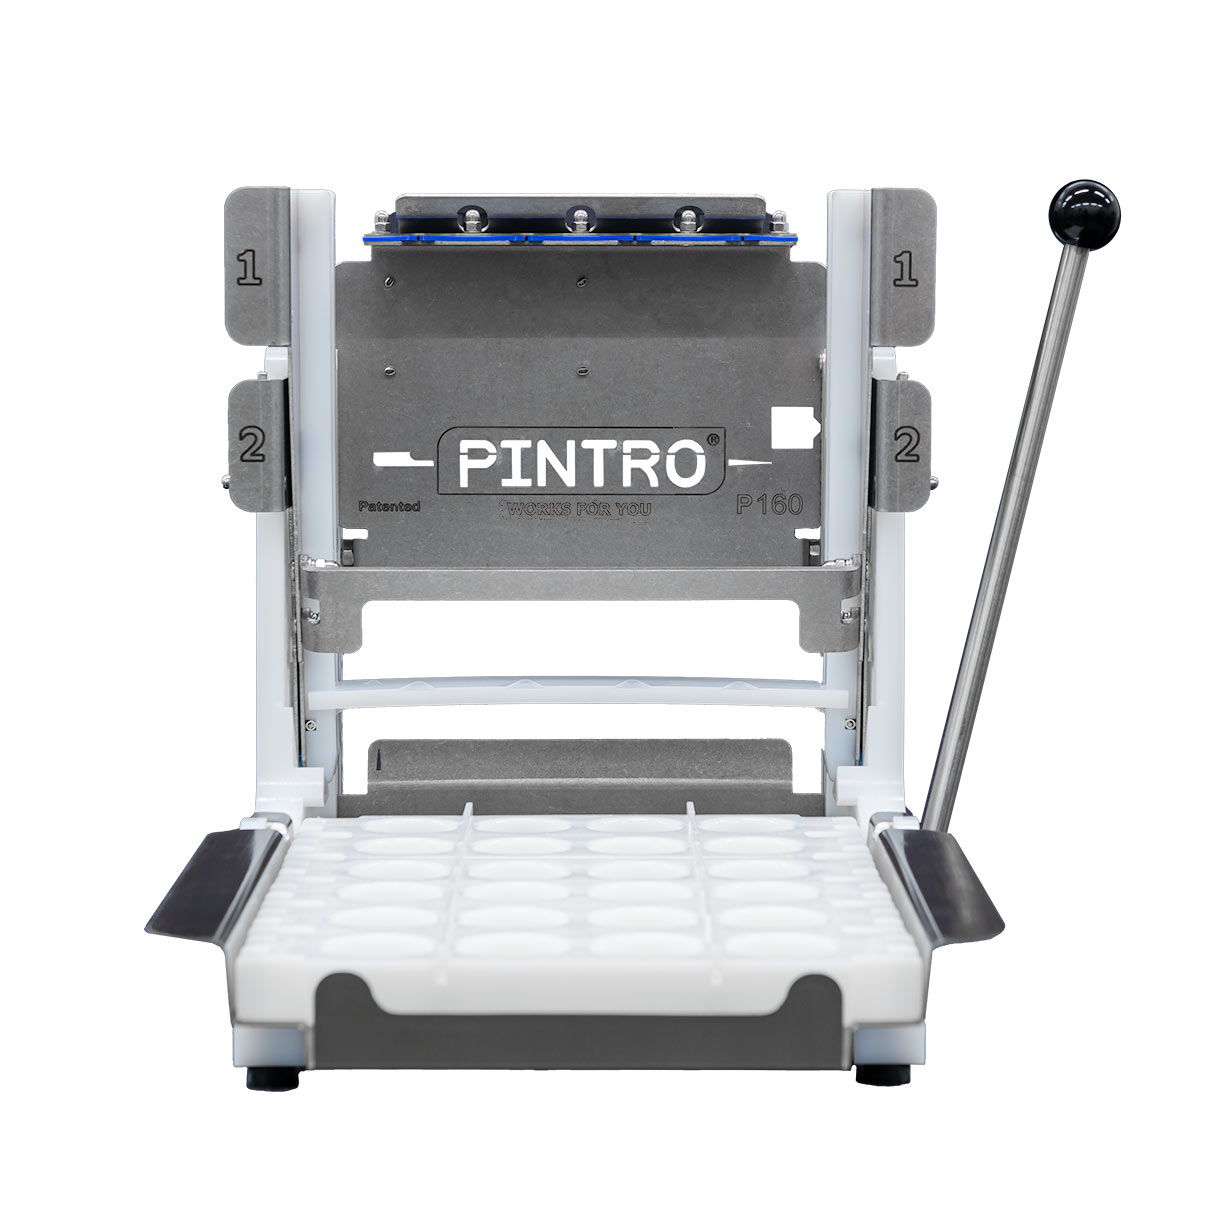 PINTRO P160 manual skewering machine